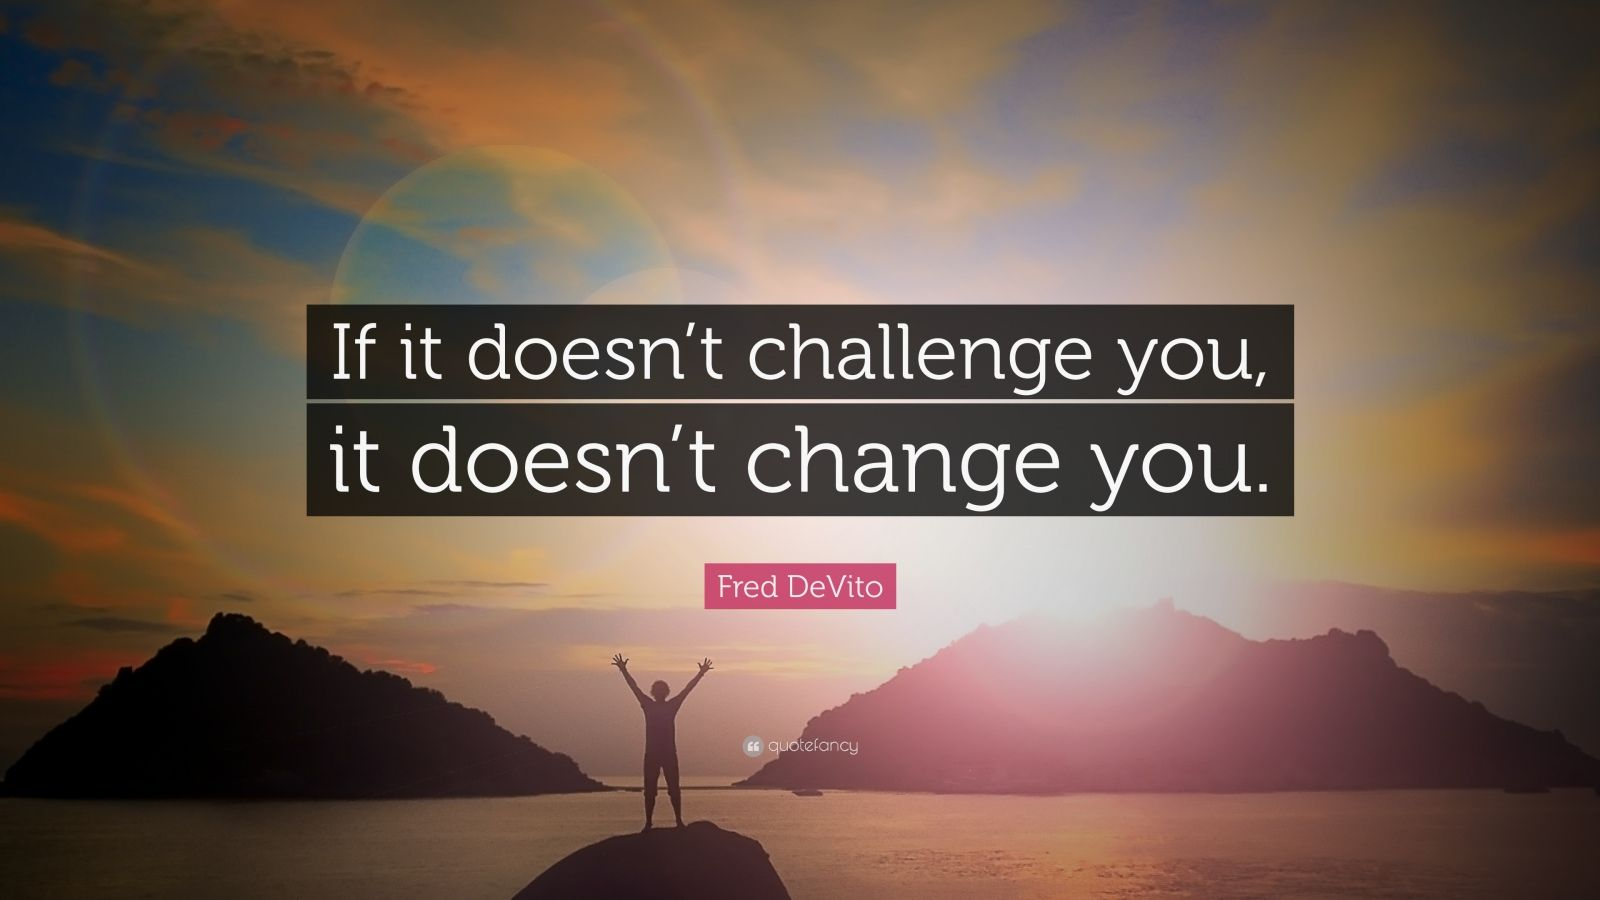 Inspirational Quotes About Life Wallpaper Fred Devito Quote If It Doesn T Challenge You It Doesn